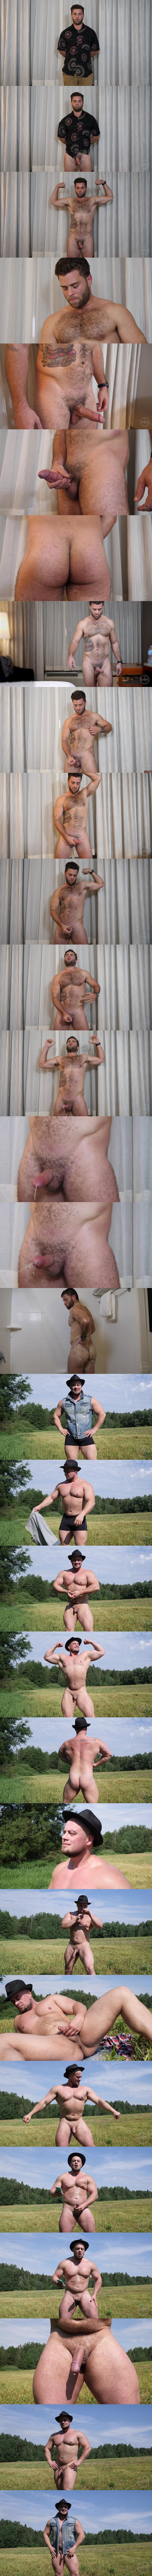 Theguysite - macho, hairy straight stud Mike and Russian Strongman Oleg pose their naked muscle bodies and jerk their hard cocks until they cum hands-free 02